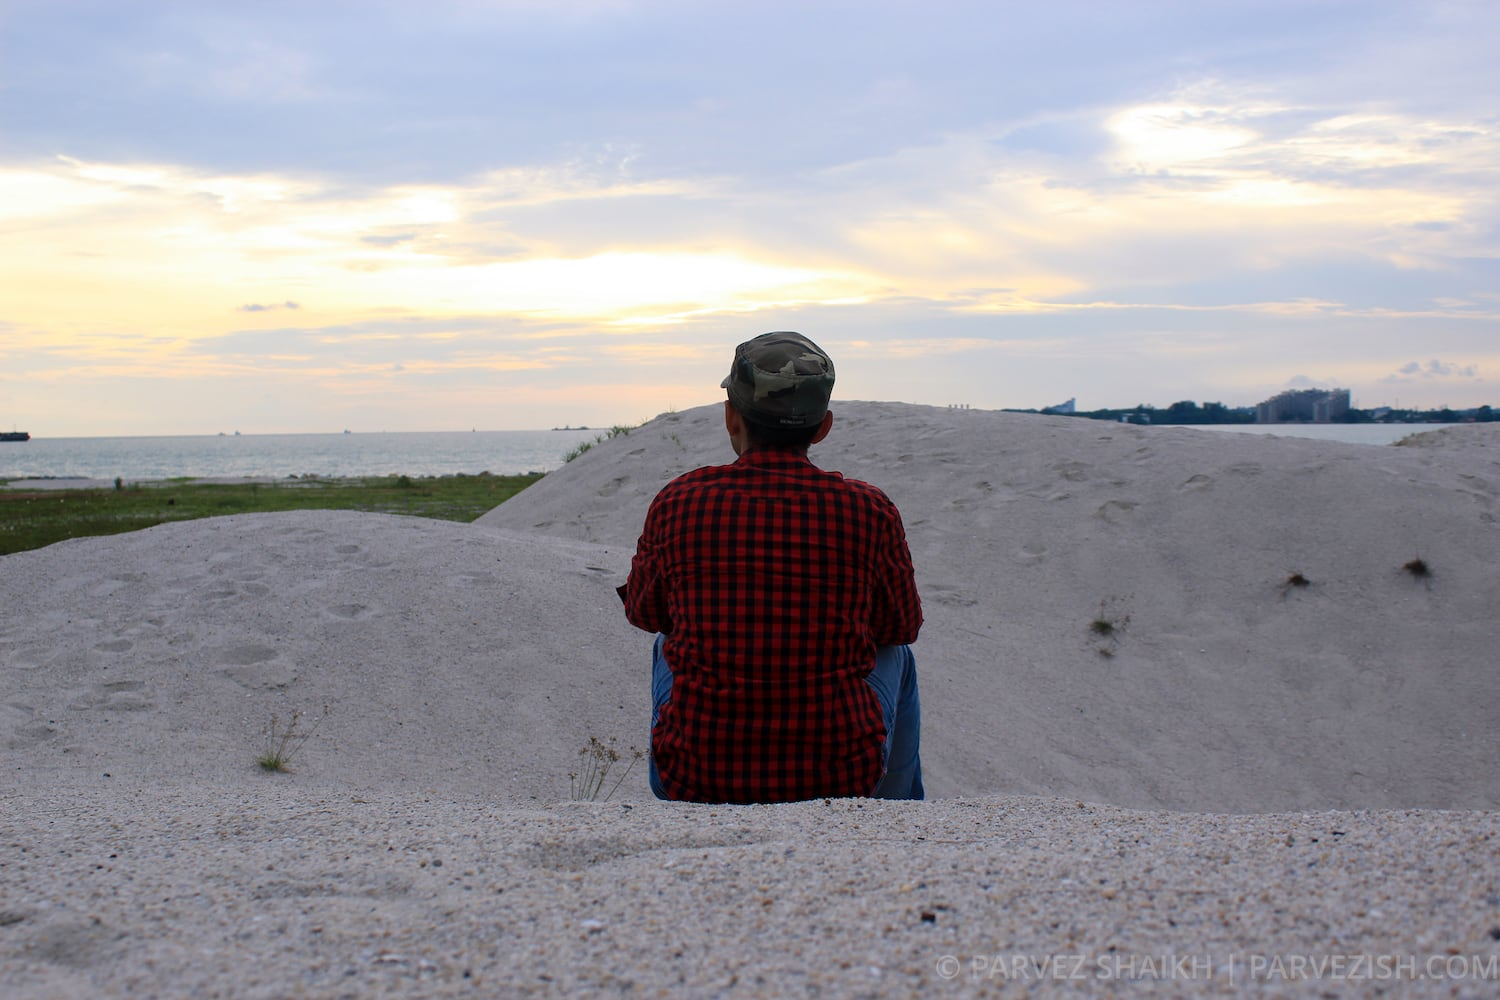 Sitting in the Sand Dune of Malacca